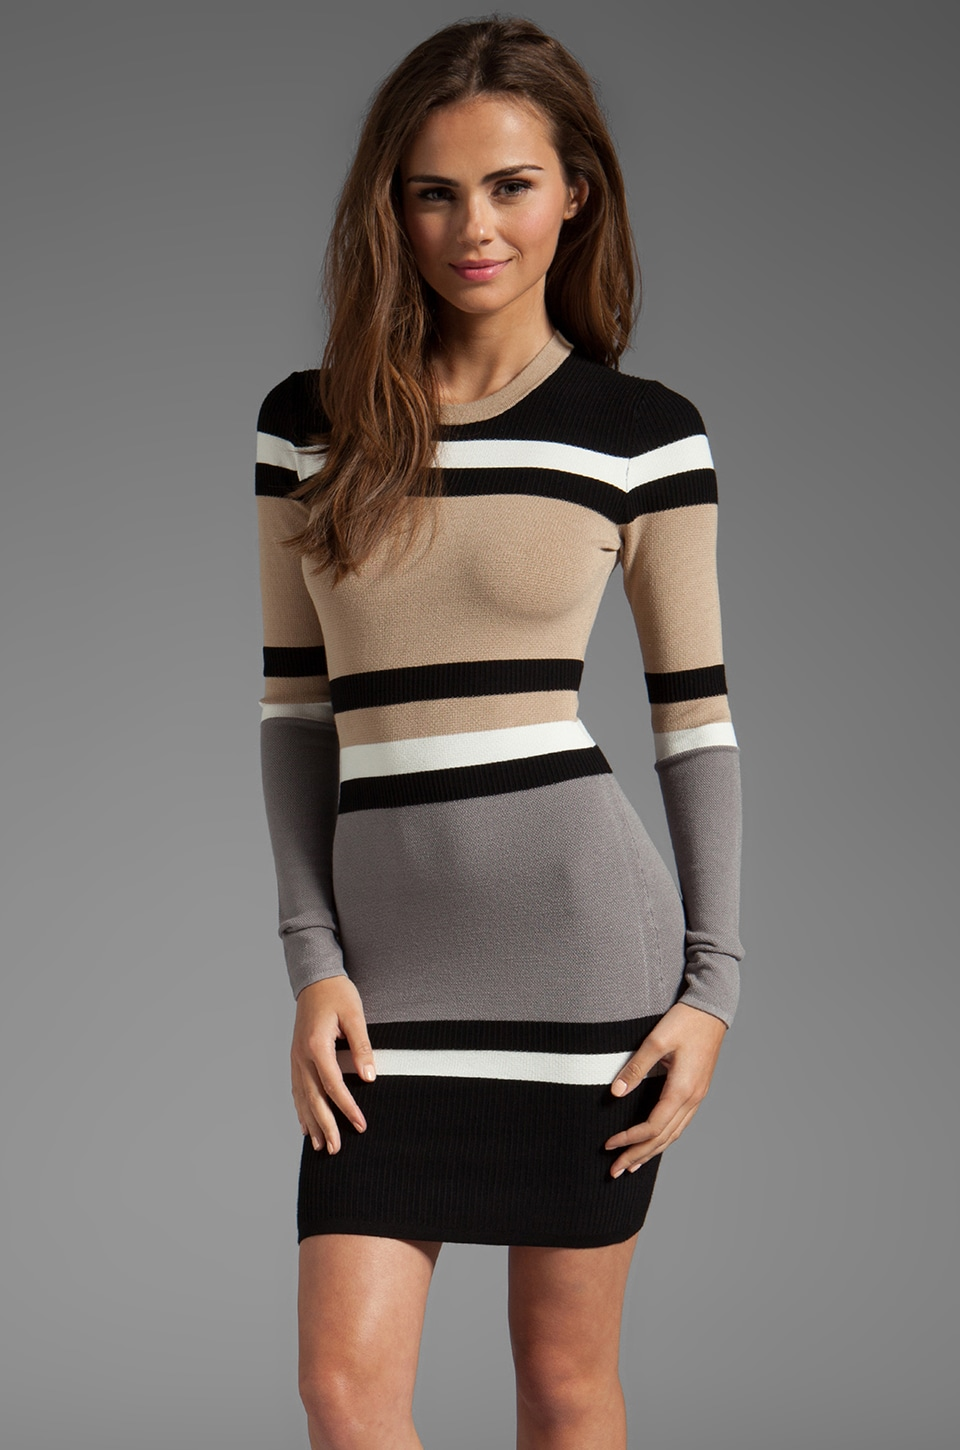 Torn by Ronny Kobo Cecilia Dress in Neutral Stripes